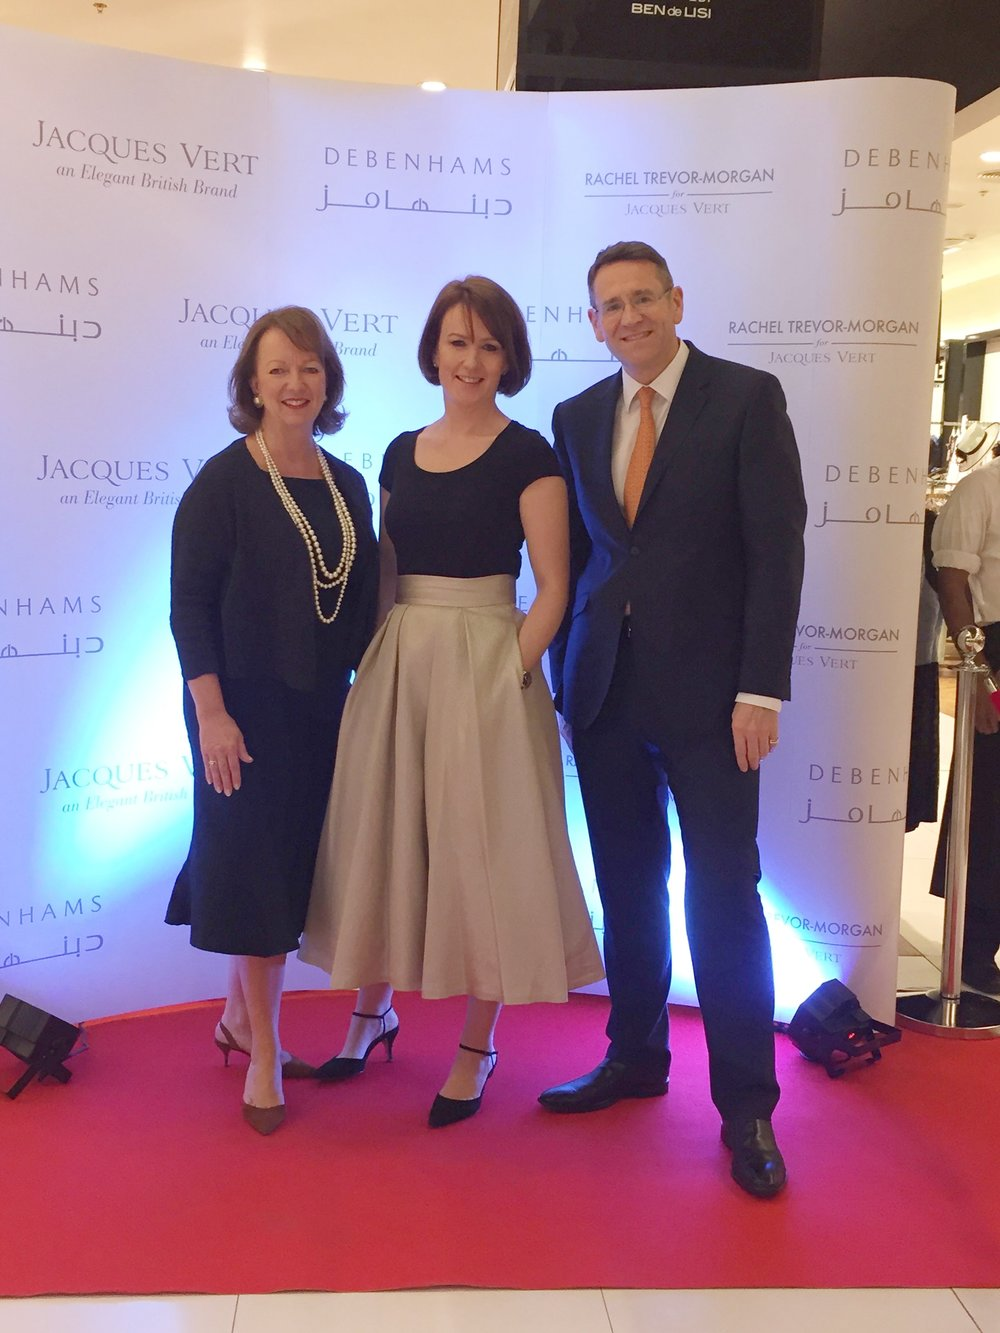 CEO, Teresa Tideman, Milliner to H.M. The Queen Rachel Trevor-Morgan and Mark Aldridge Global Marketing Director at the Dubai launch event